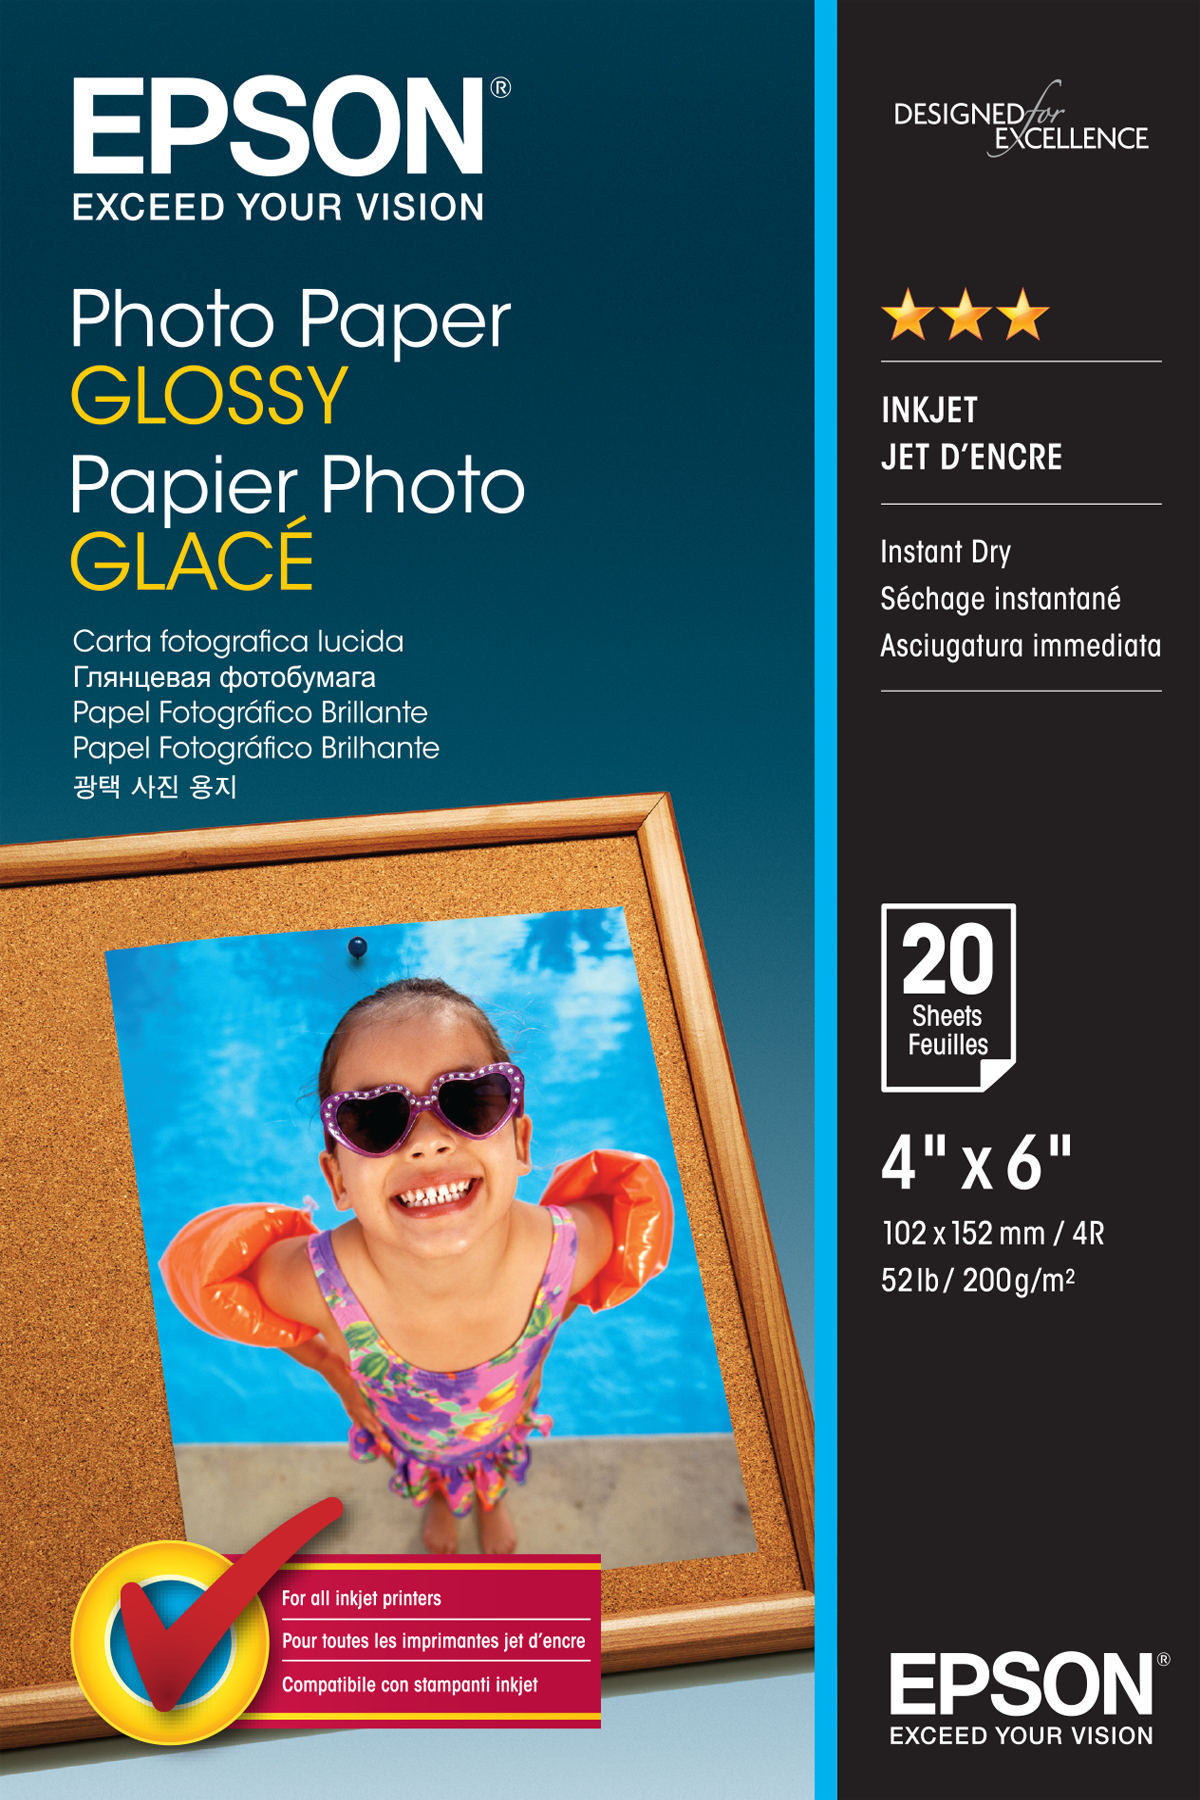 Epson Photo Paper Glossy - 10x15cm - 20 sheets